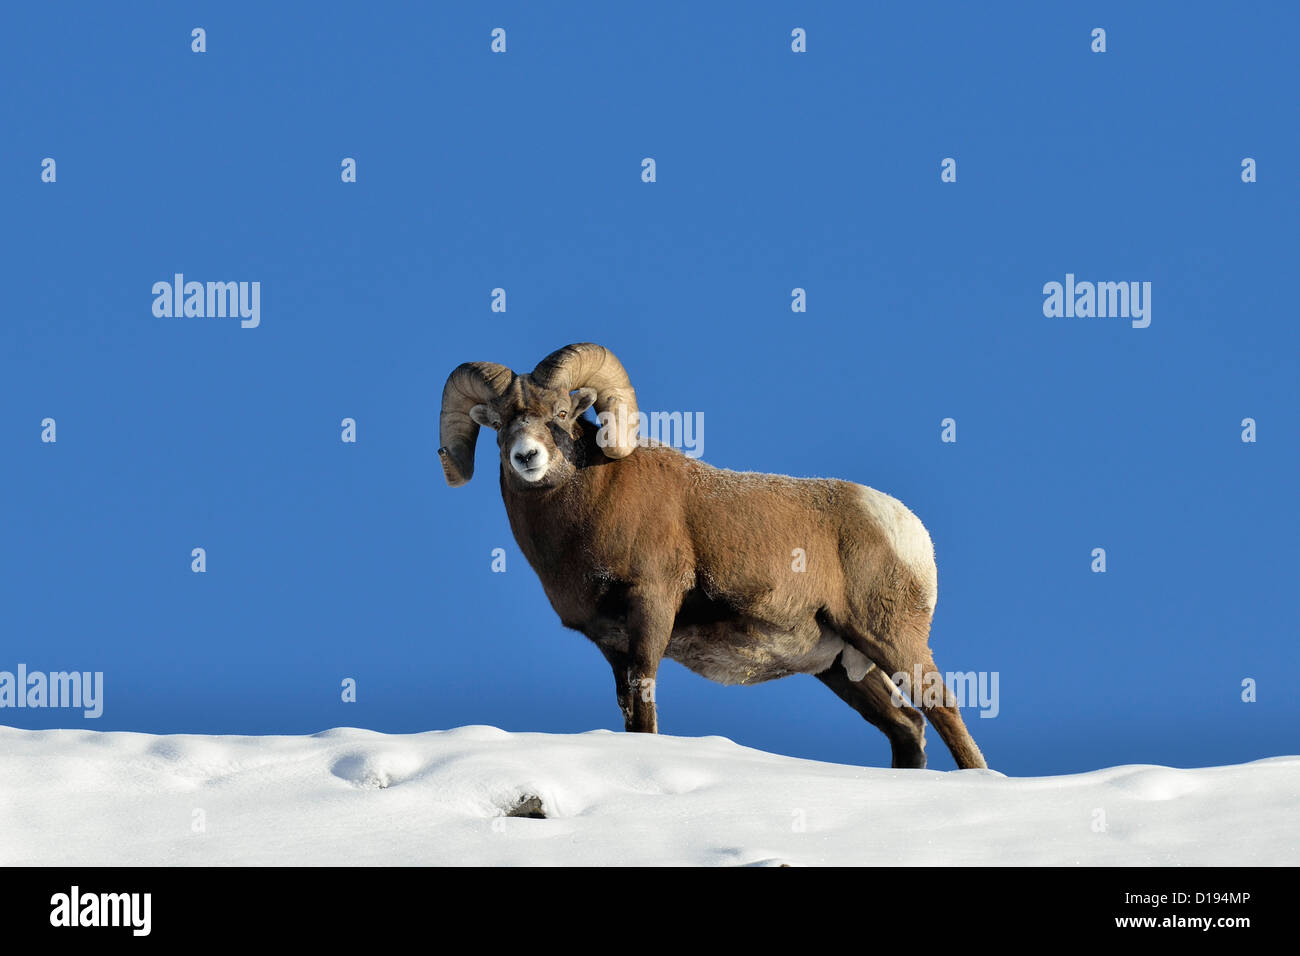 A mature Bighorn ram standing on a snow covered mountain ridge against a blue sky. - Stock Image